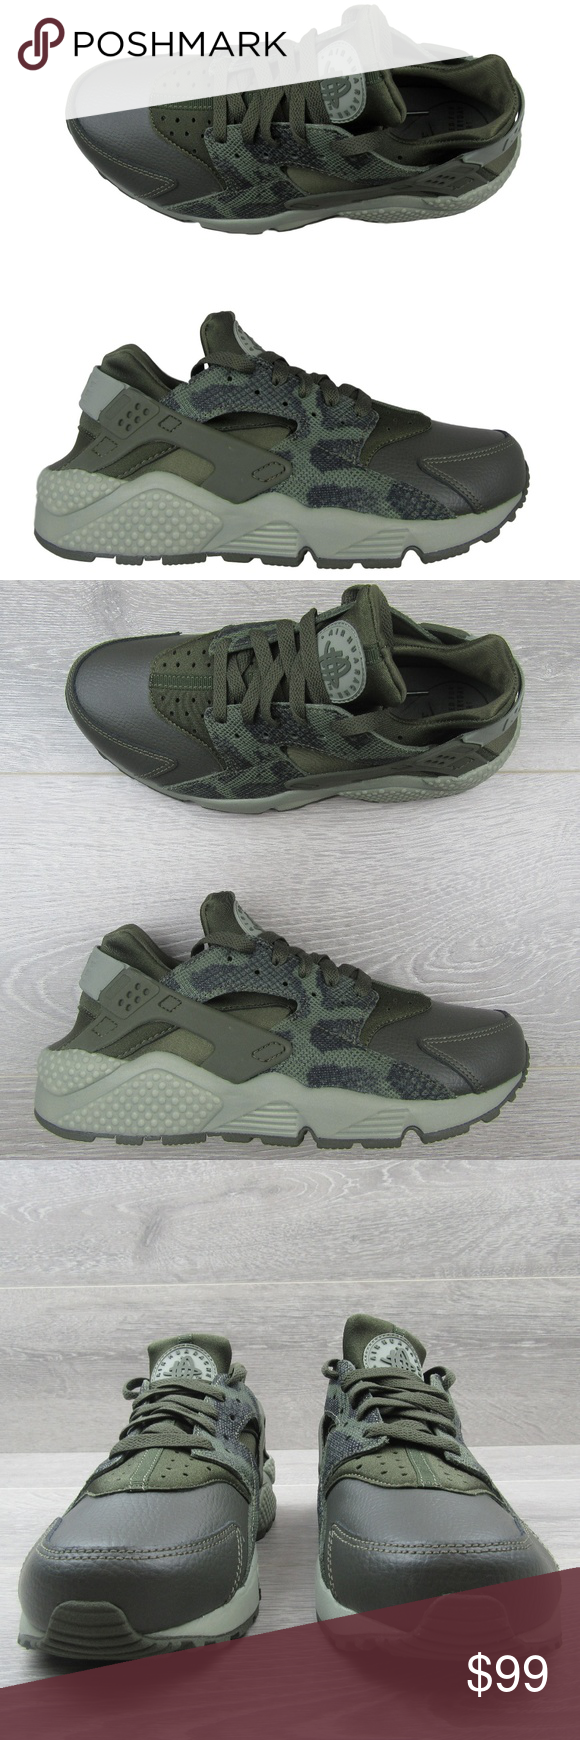 9a6ce64d8ce2 Nike Air Huarache Run Premium Running Shoes Size 9 Nike Air Huarache Run  Premium Running Shoes Women s Python Green   Black Colorway Style - 683818  302 ...